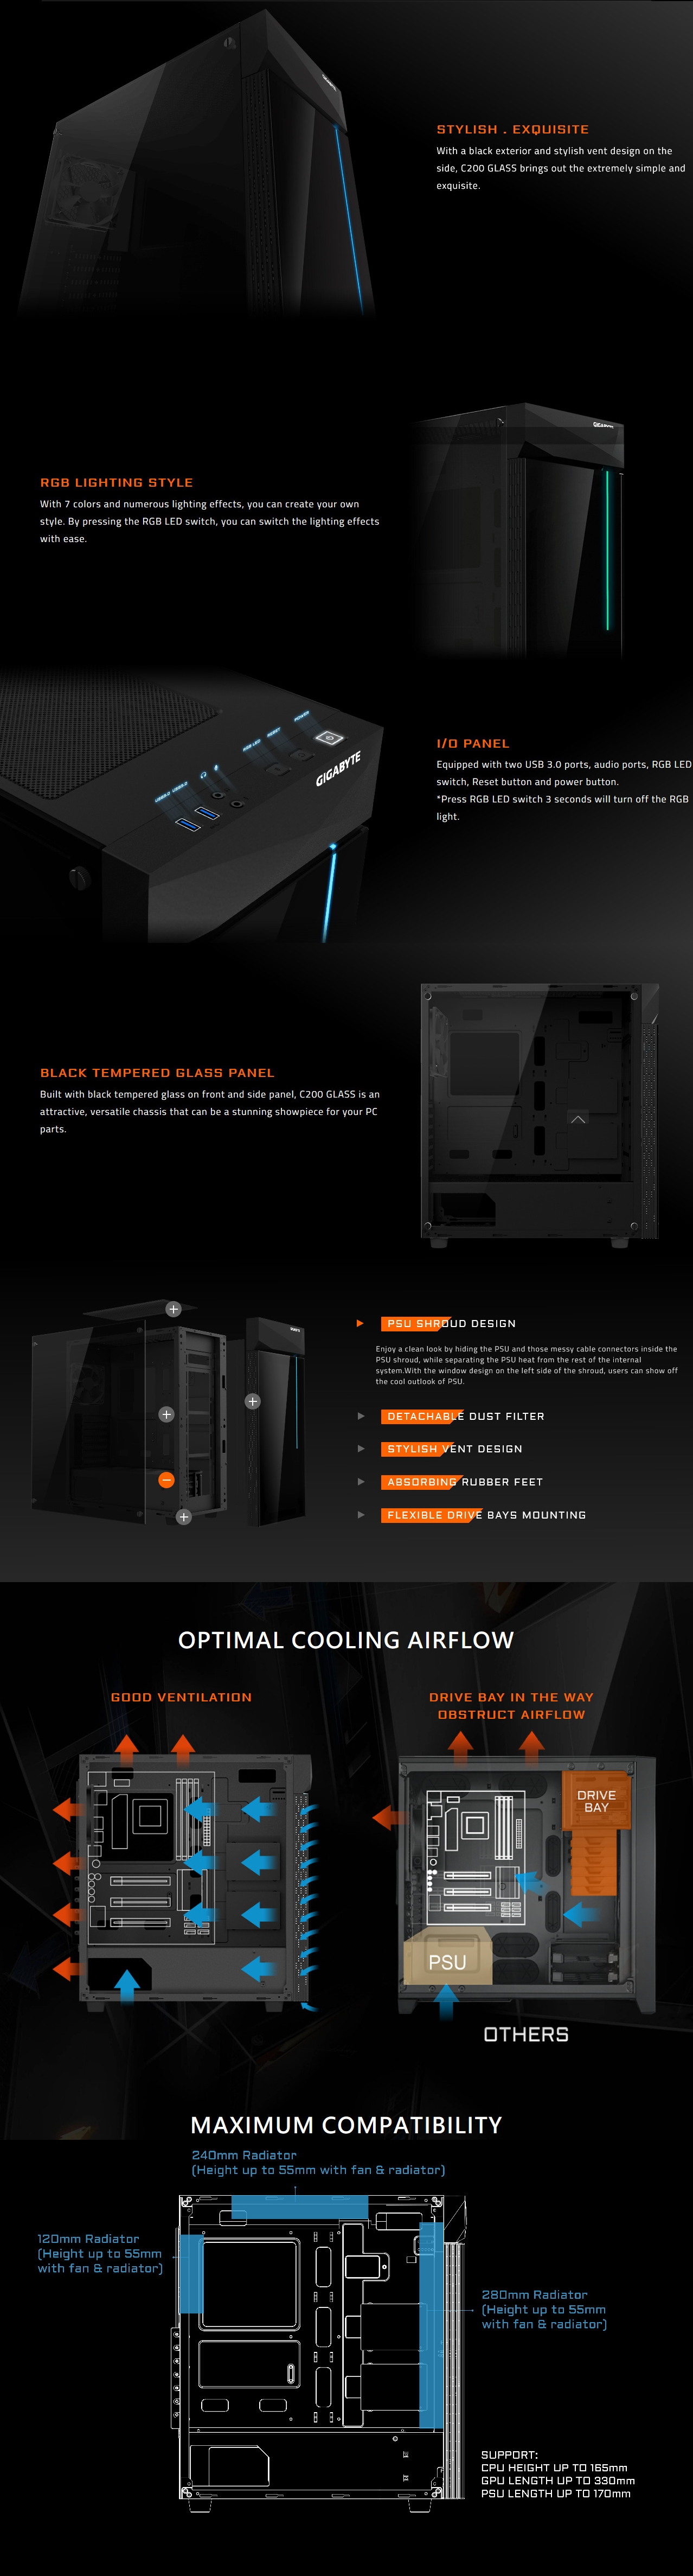 A large marketing image providing additional information about the product Gigabyte C200 Glass ATX Mid Tower Case - Additional alt info not provided